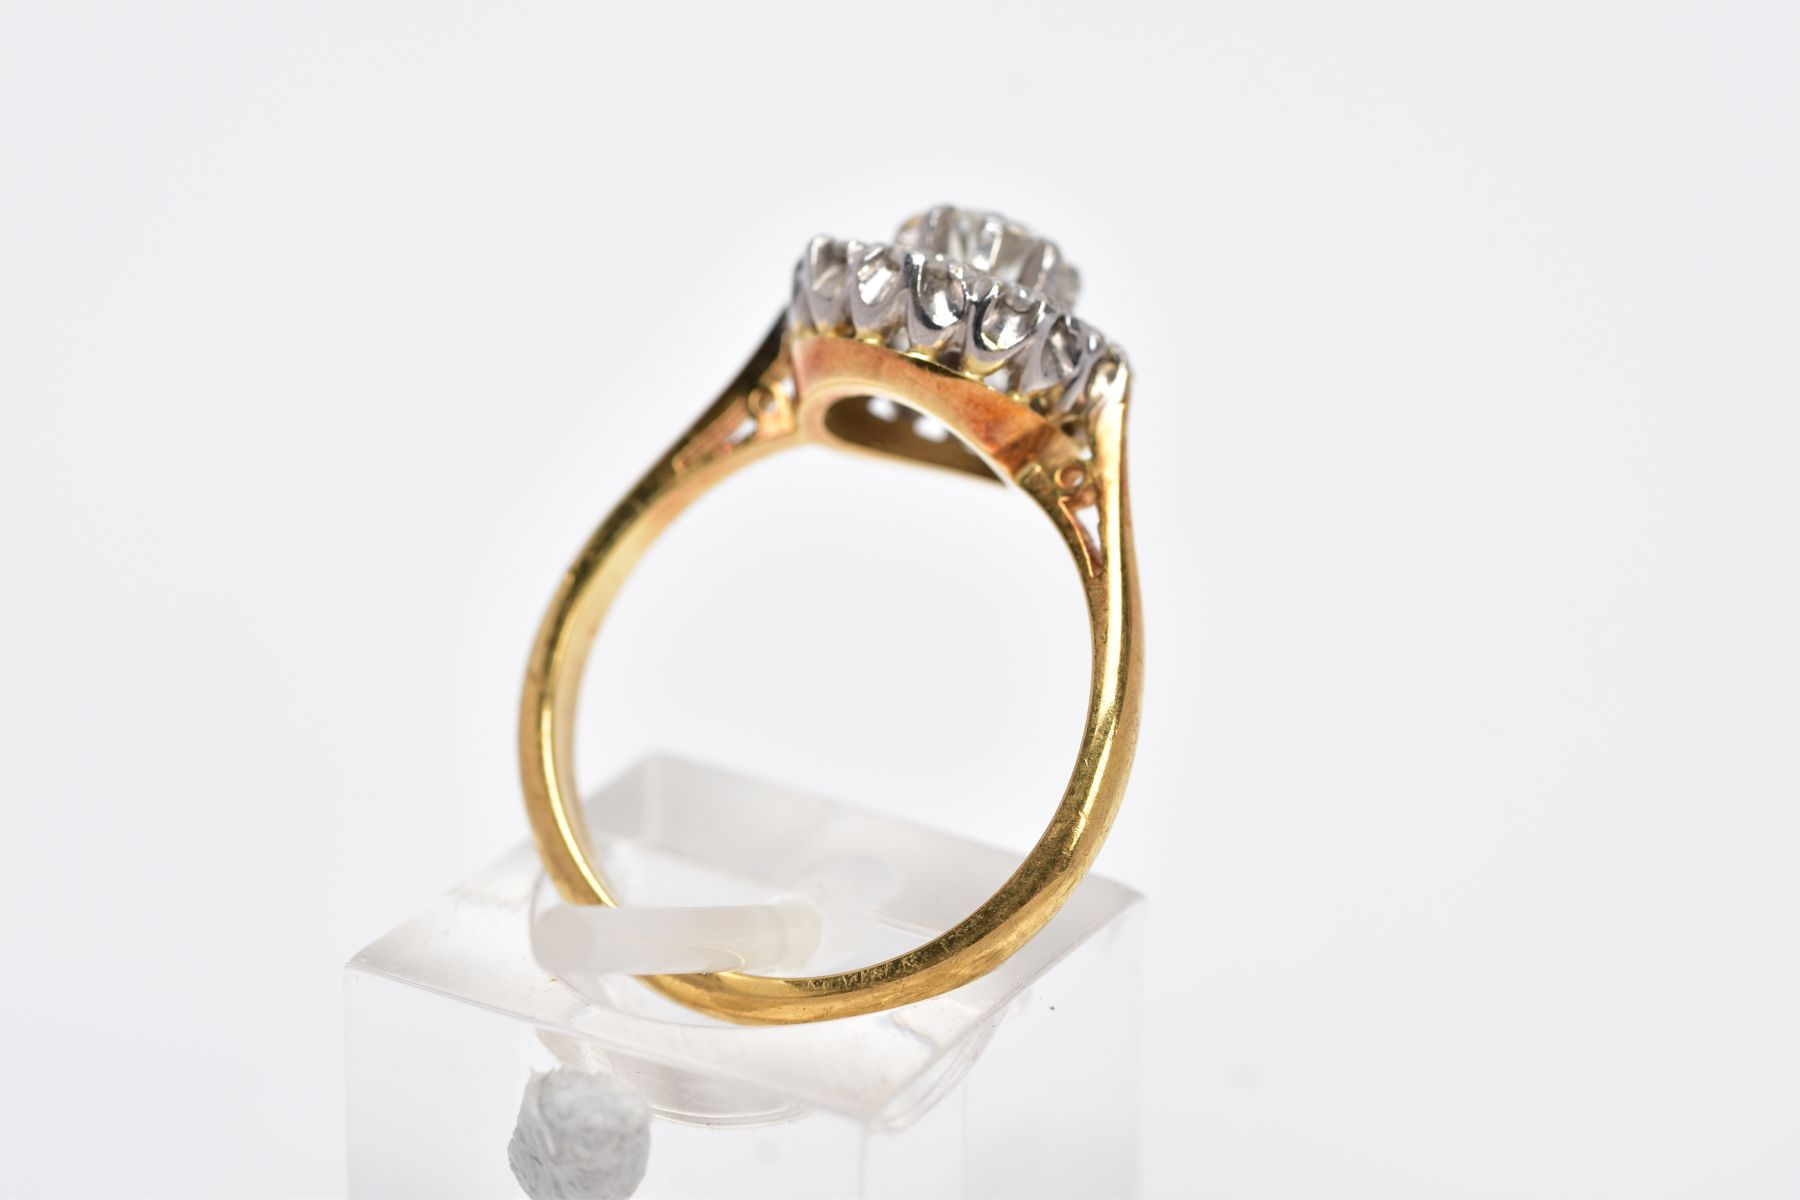 A LATE 20TH CENTURY ROUND DIAMOND CLUSTER RING, centring on a modern round brilliant cut diamond, - Image 3 of 5